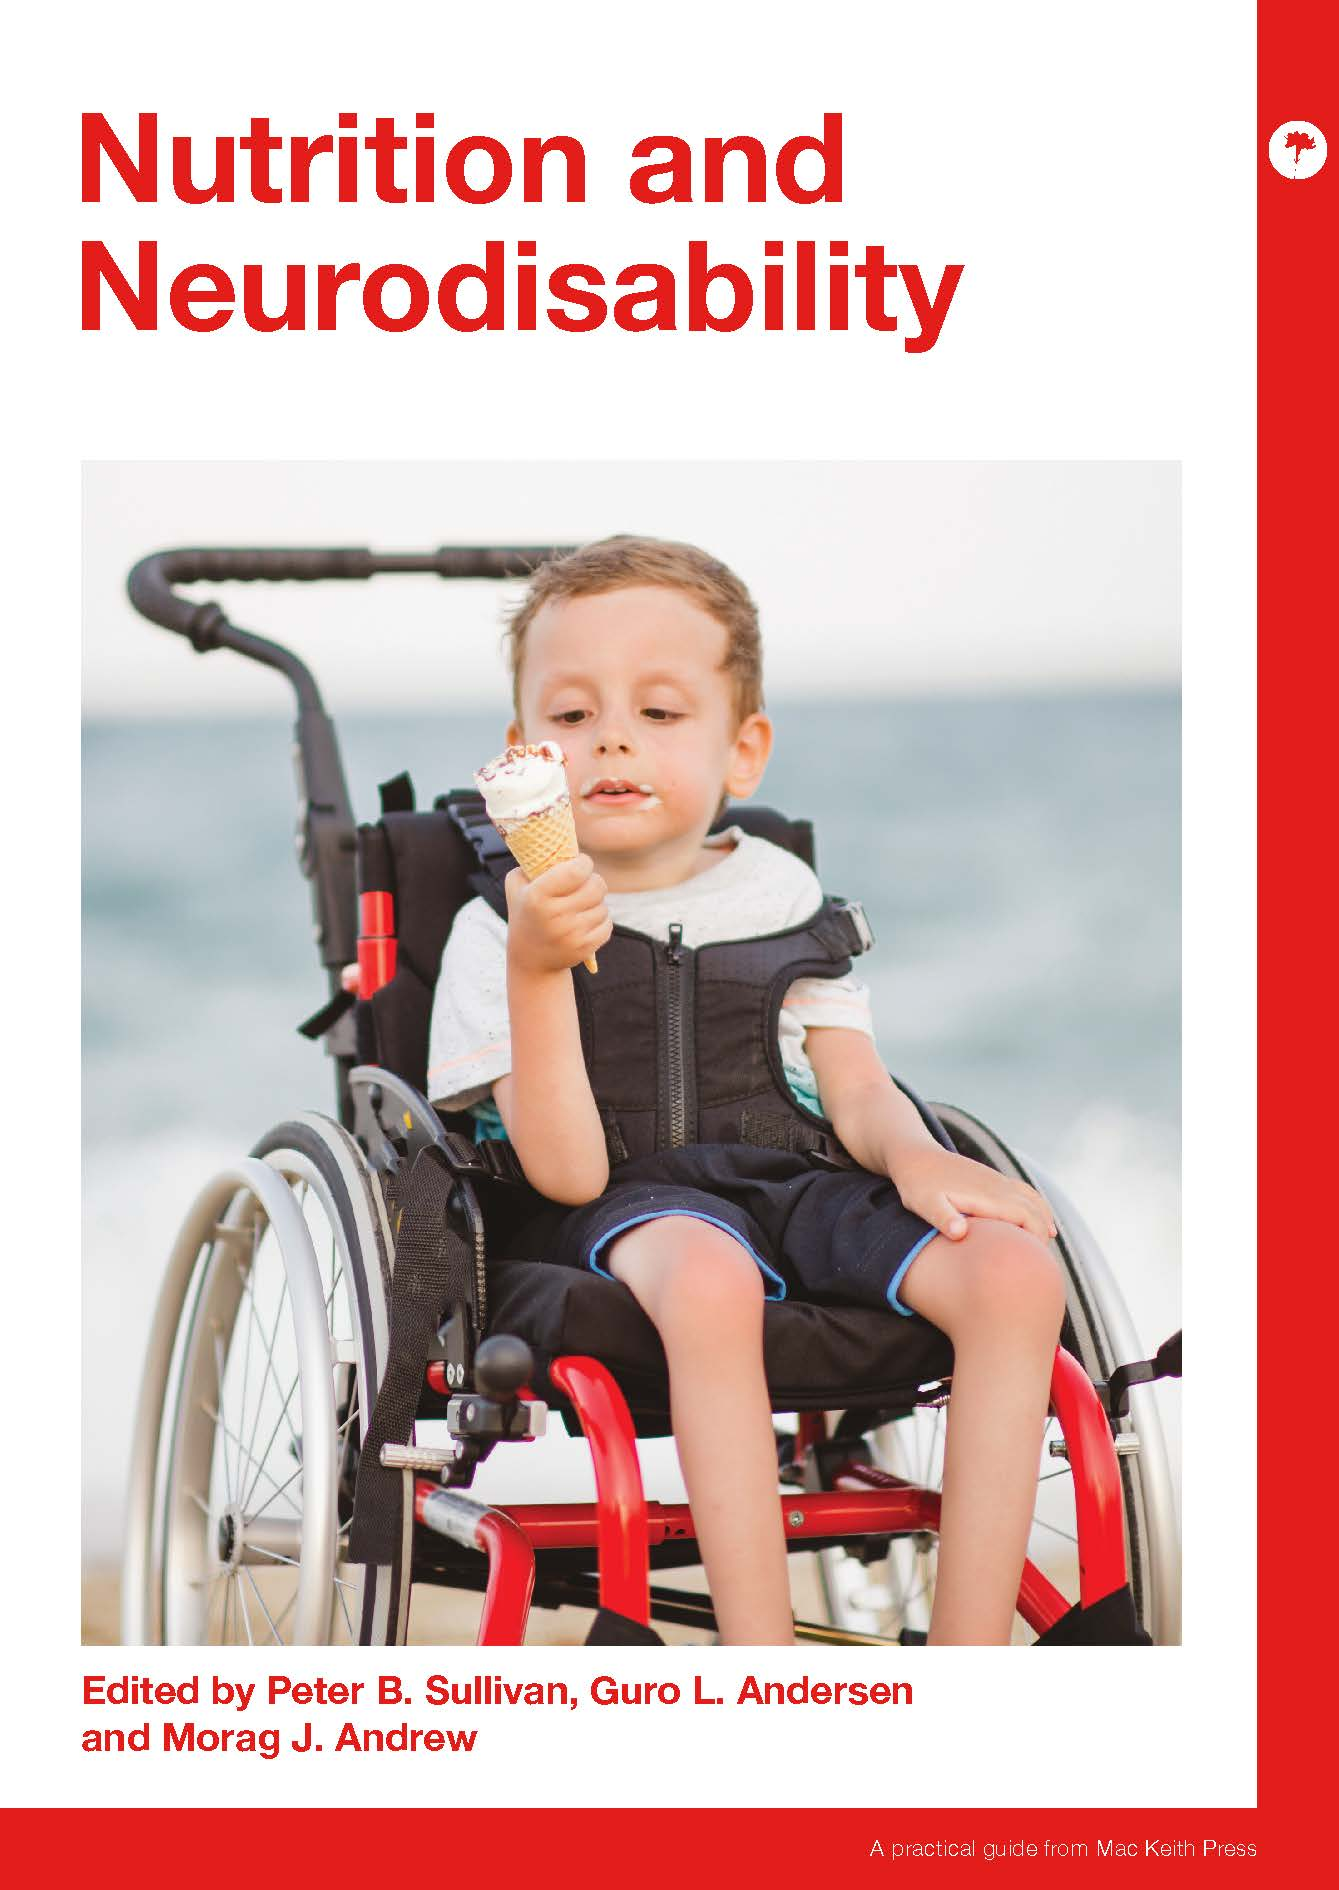 Nutrition and Neurodisability